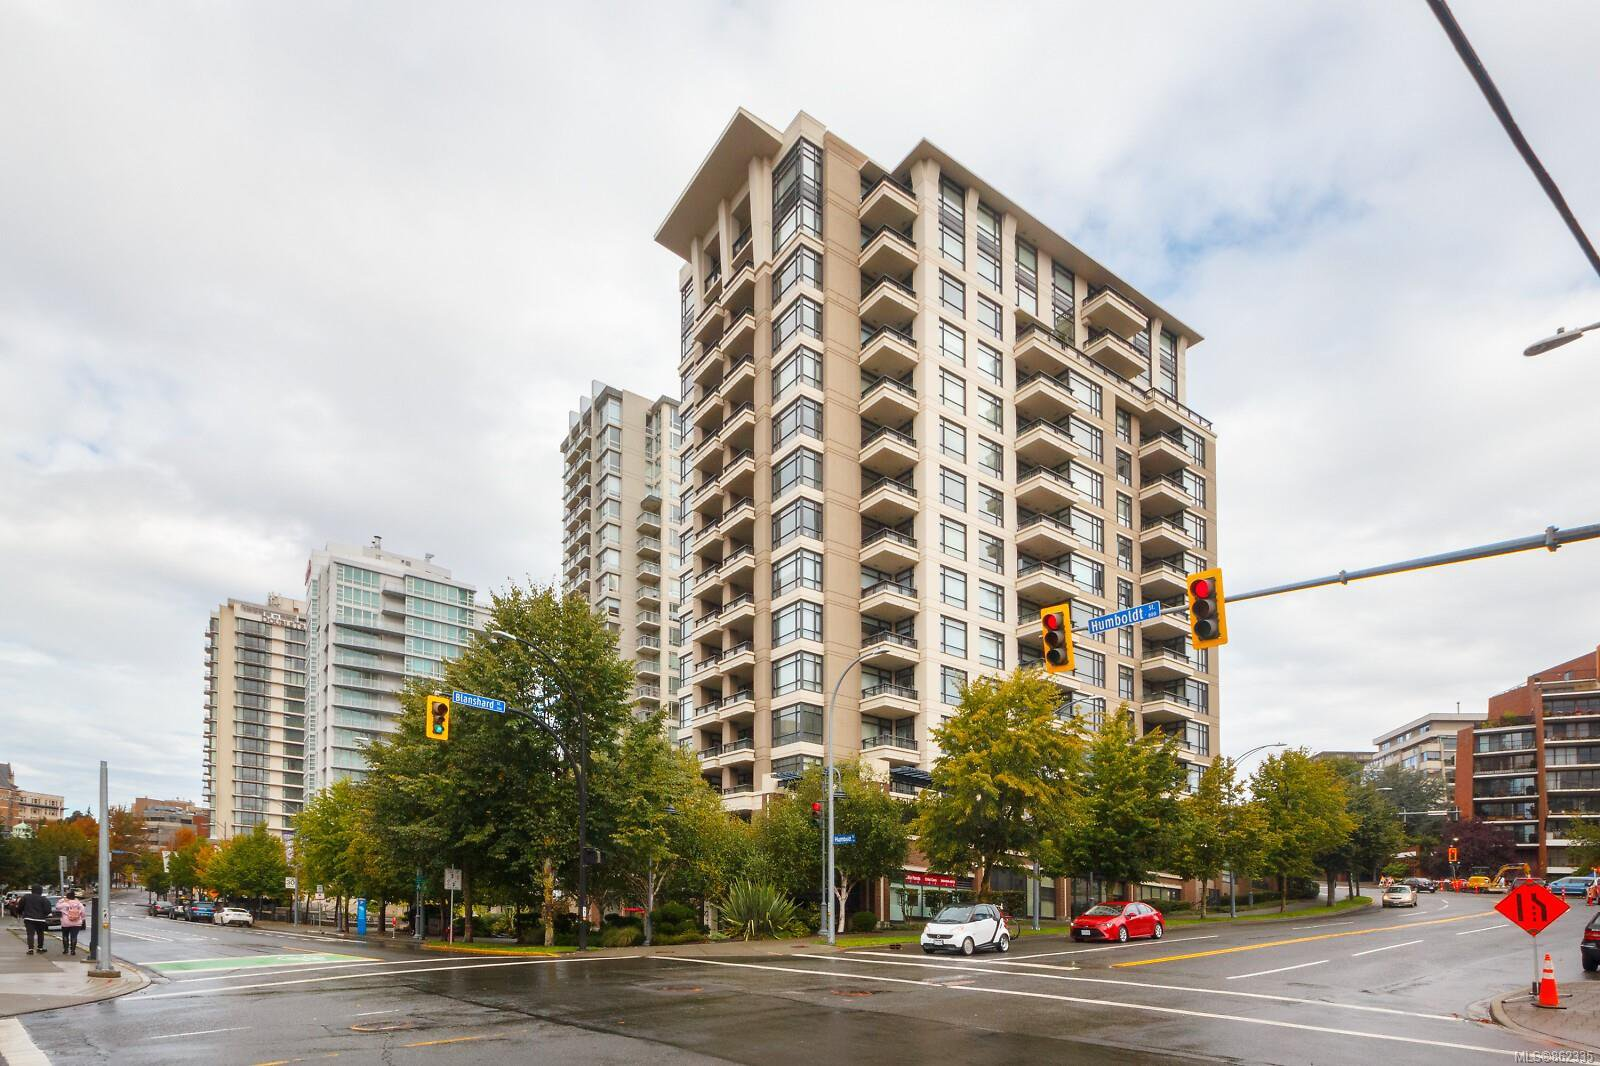 Main Photo: 406 788 Humboldt St in : Vi Downtown Condo for sale (Victoria)  : MLS®# 862335